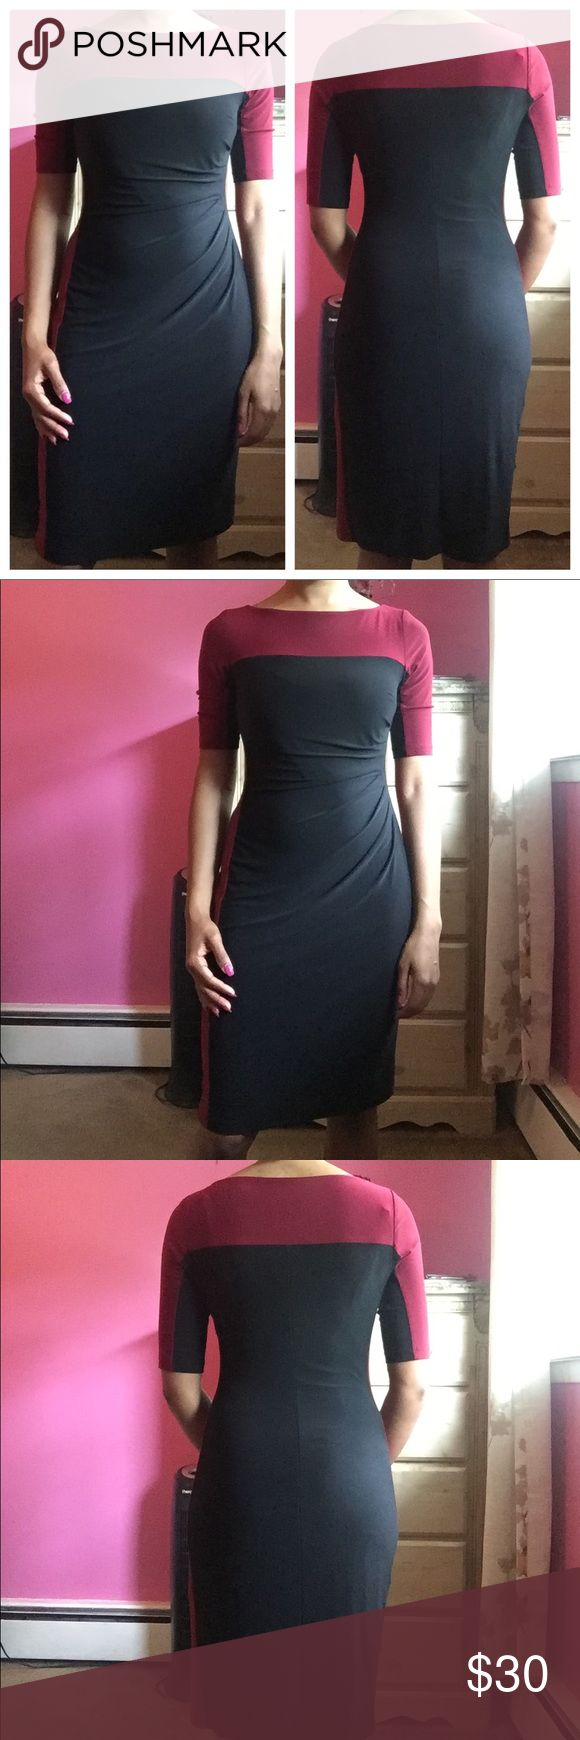 🎉Wrap Front Dress🎉 Black and maroon wrap front dress with ruched detailing on the left side that hugs all your curves. The dress is lined underneath and the material has a soft silky feel to it. Only worn twice, in excellent condition. Dress length: 37 inches. Waist: 28 inches approximately. Bust: 32 inches approximately. Materials: 95% polyester, 5% elastane. Chaps Dresses